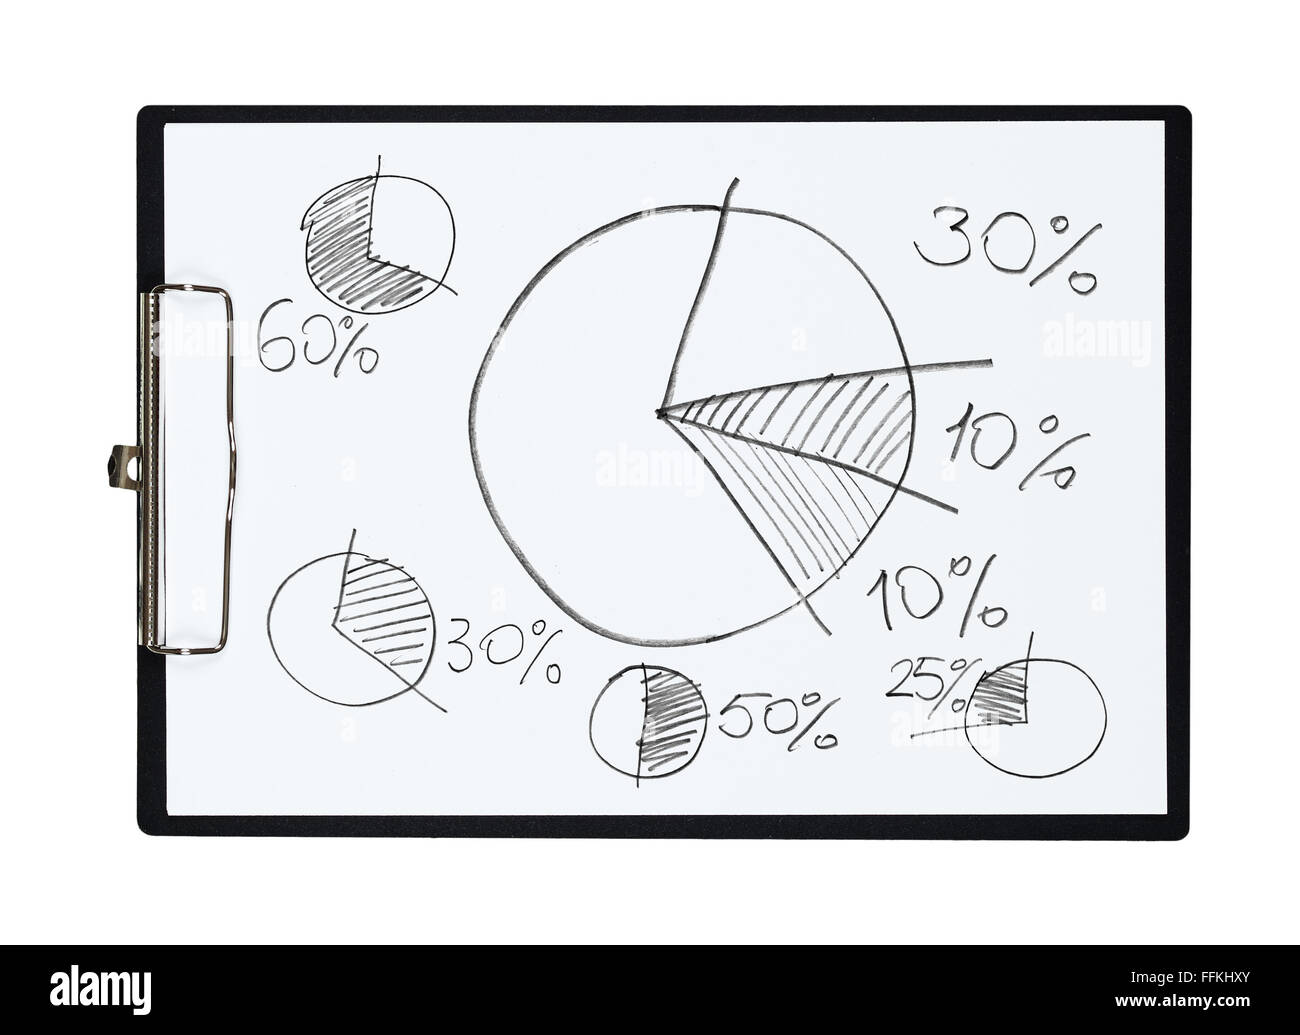 Clipboard And Paper Sheet With Pencil Drawing Pie Chart